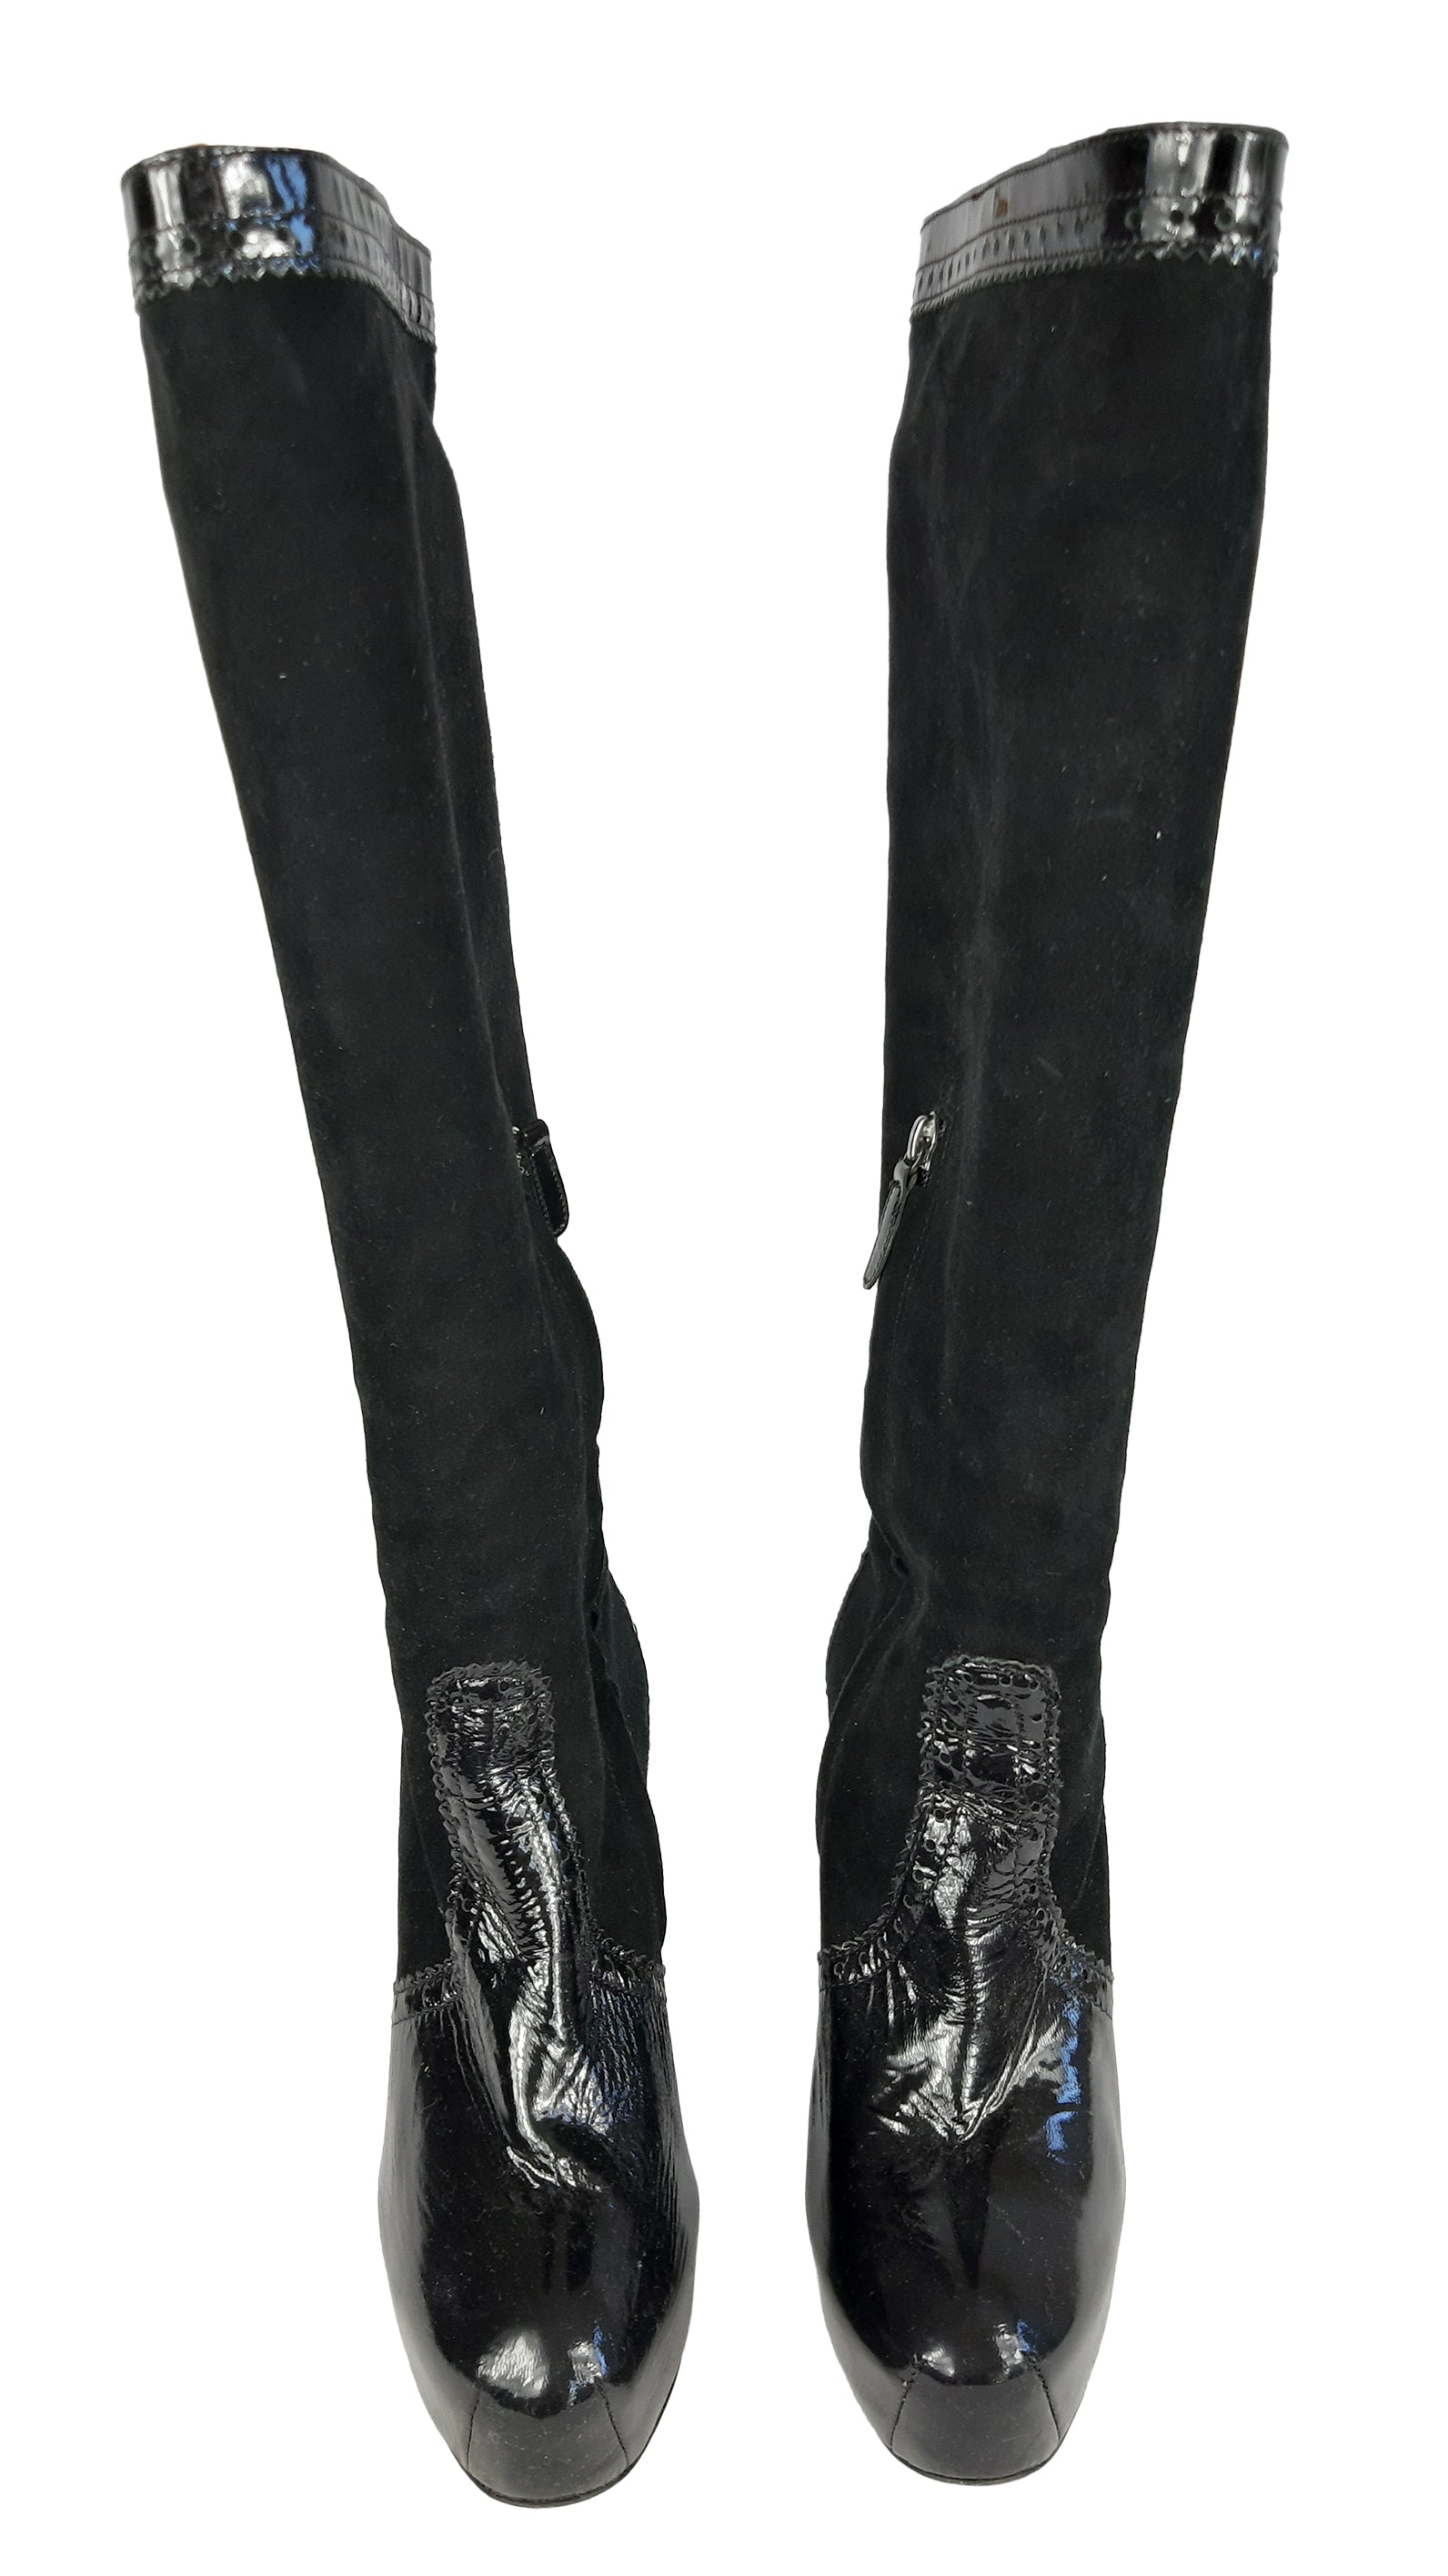 Philosophy by Alberta Ferretti Suede and Patent Leather Knee-High Boots Size 36 (EU)